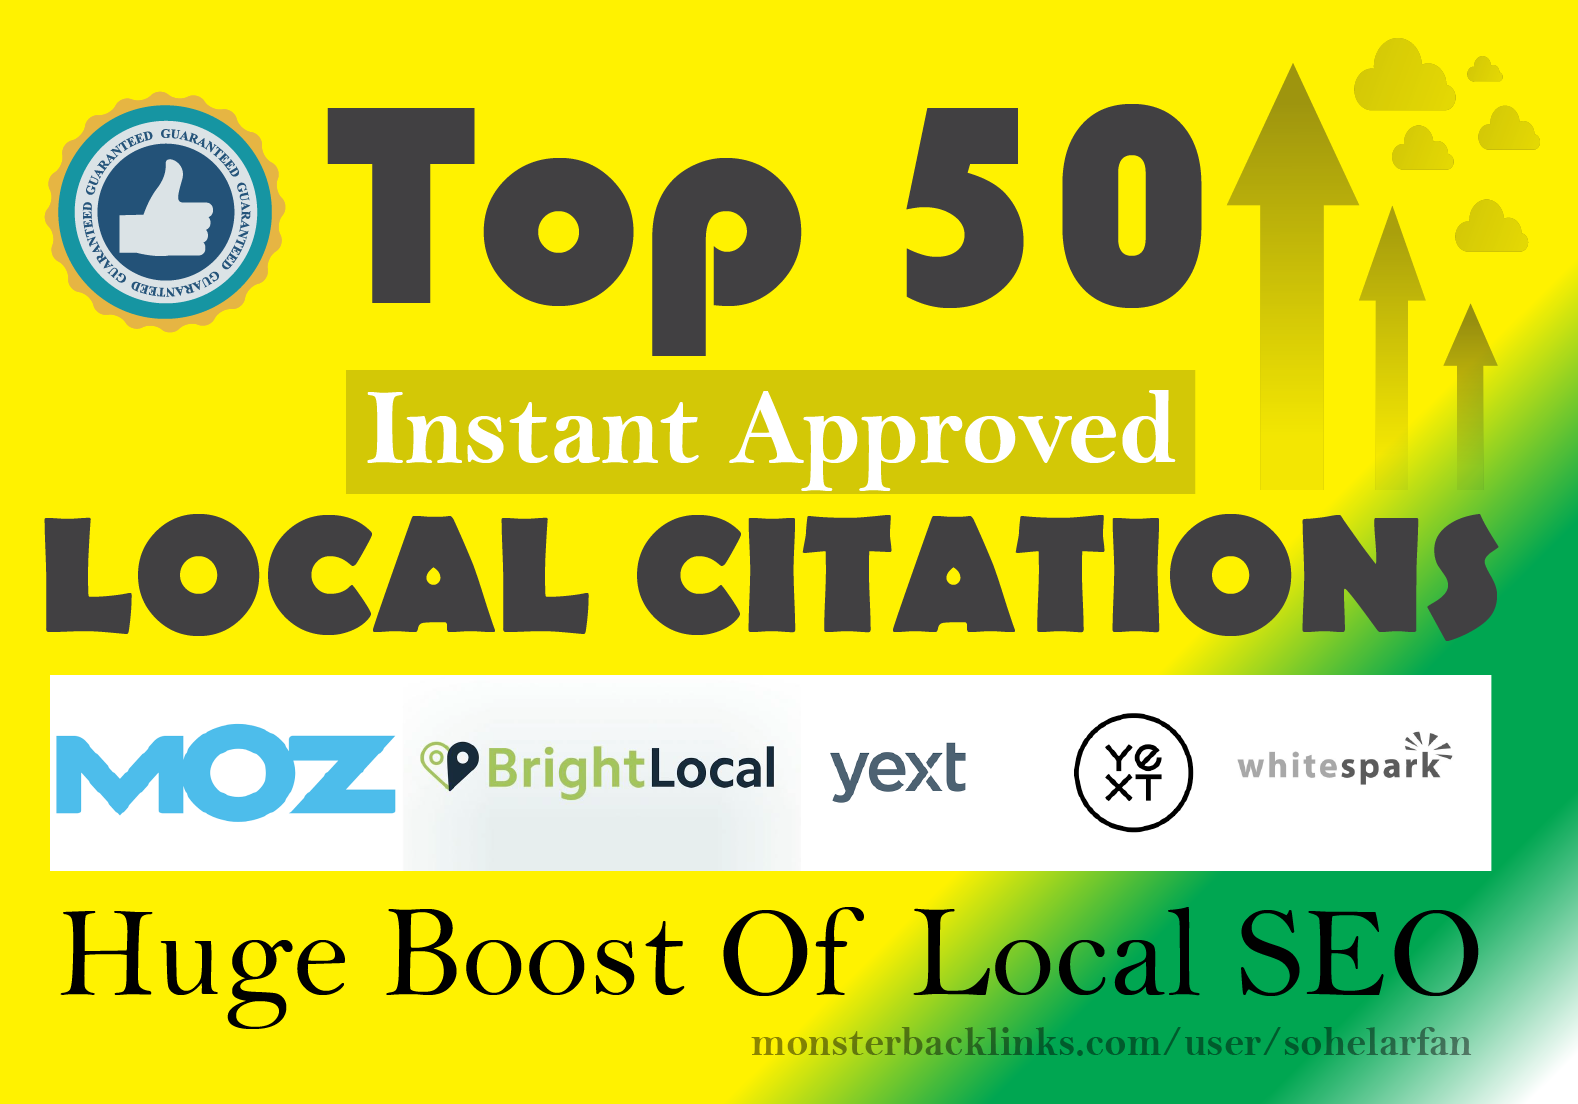 Top 50 Local SEO Citations From Moz,  Brightlocal,  yext and whitespark for Google my business Ranking